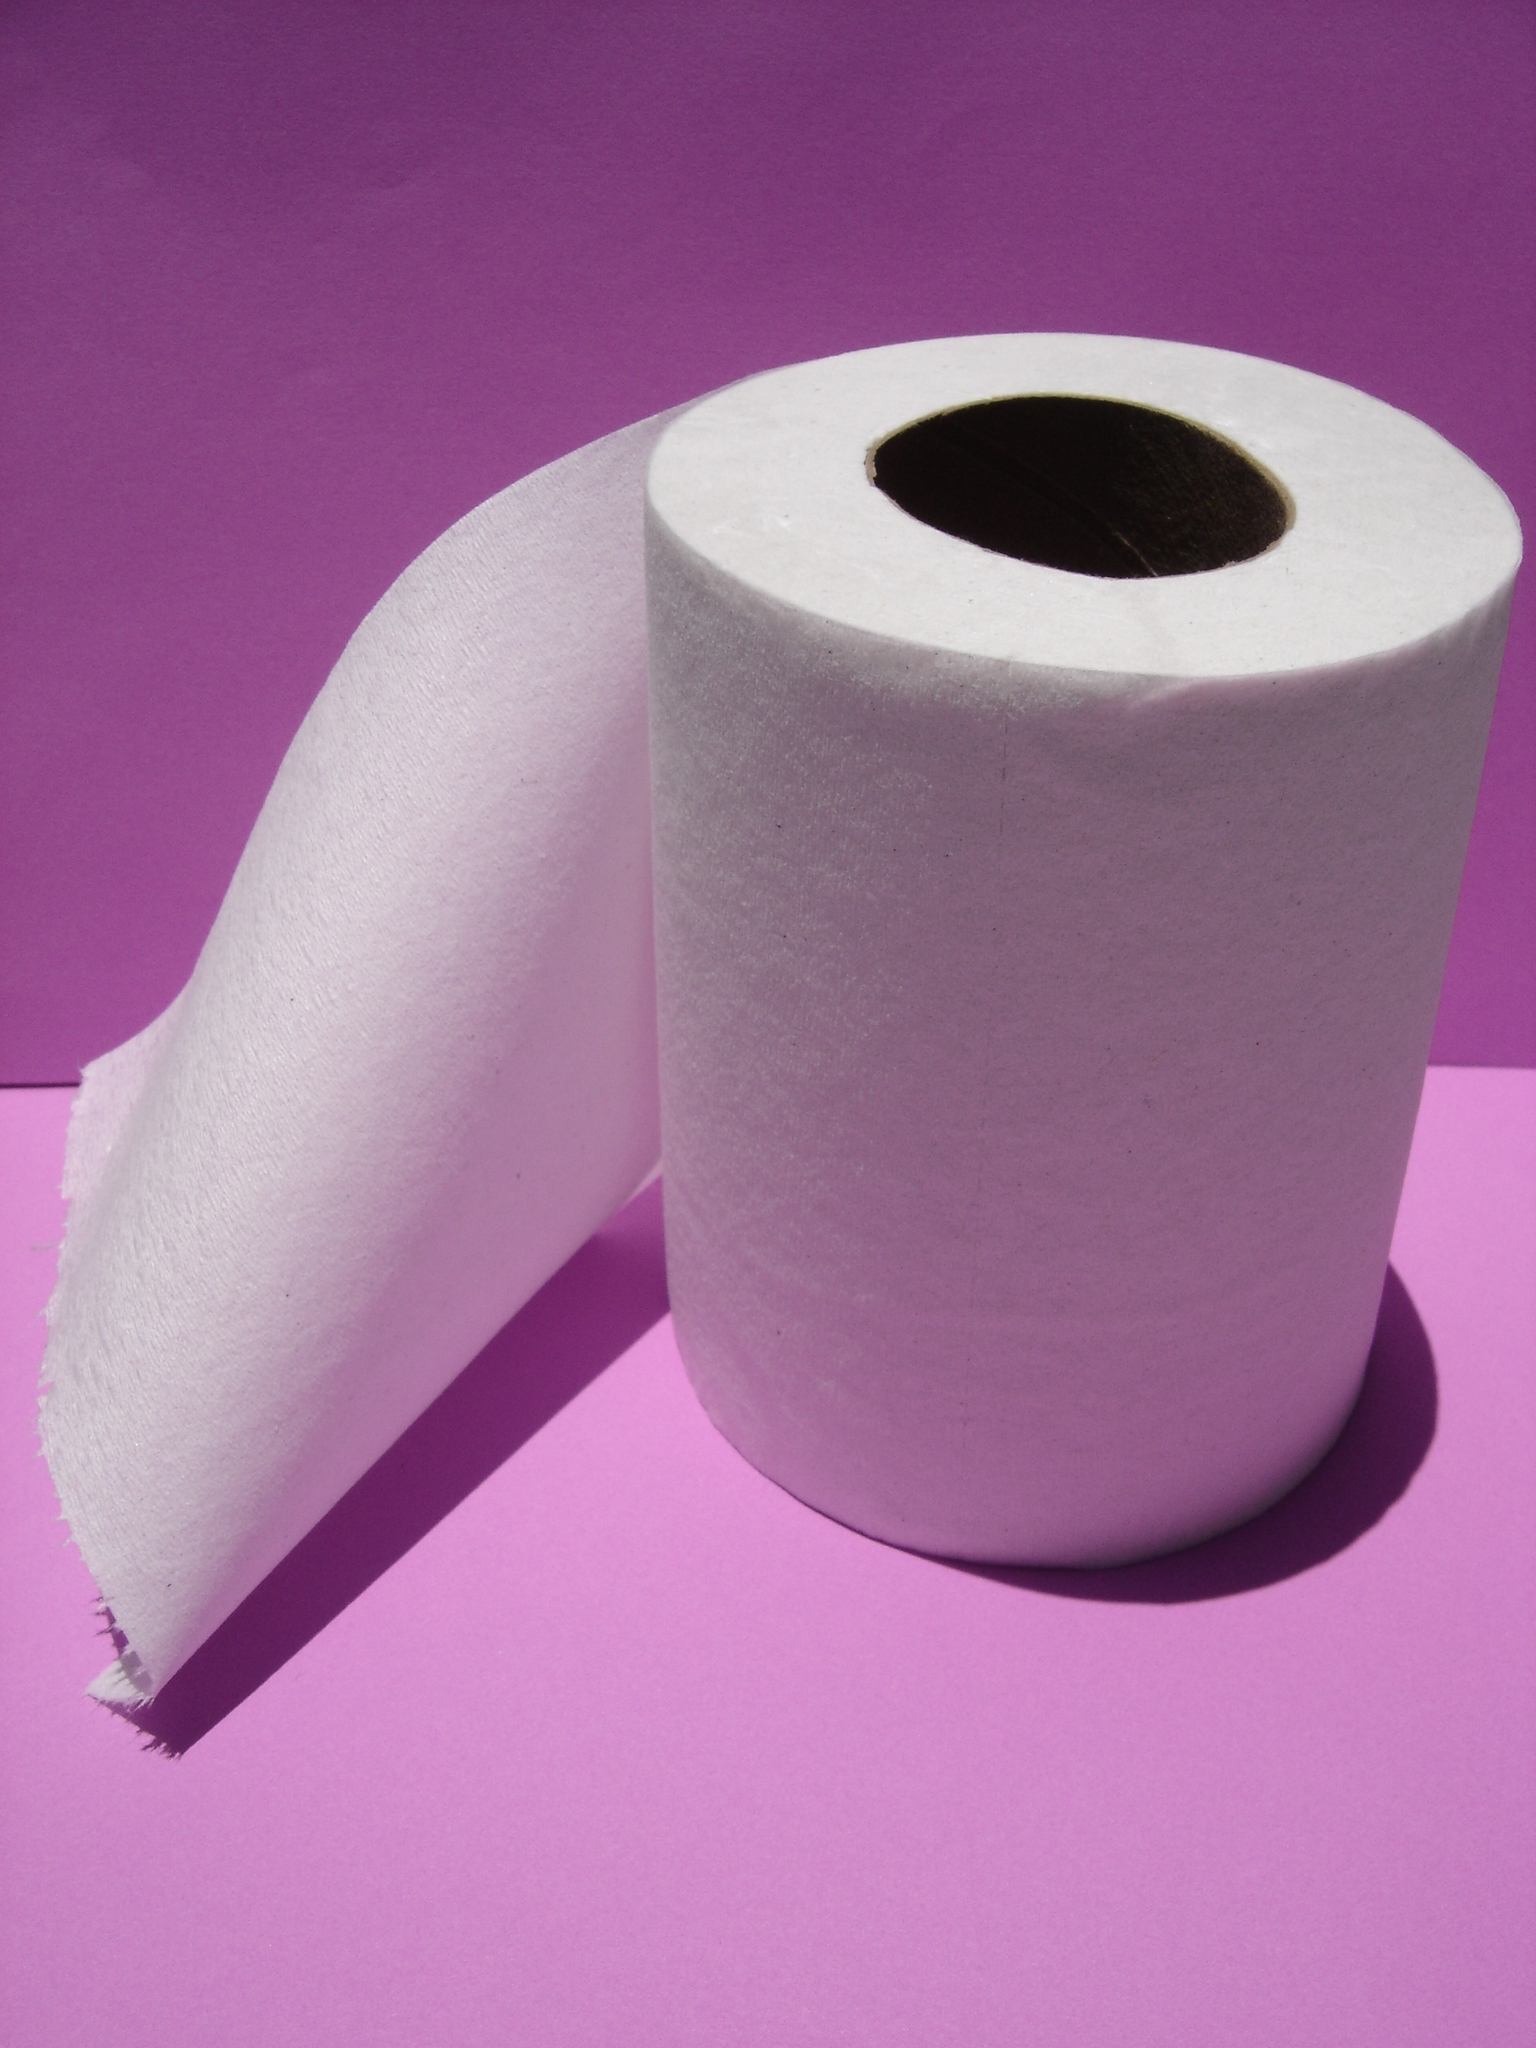 The Toilet Paper Scandal